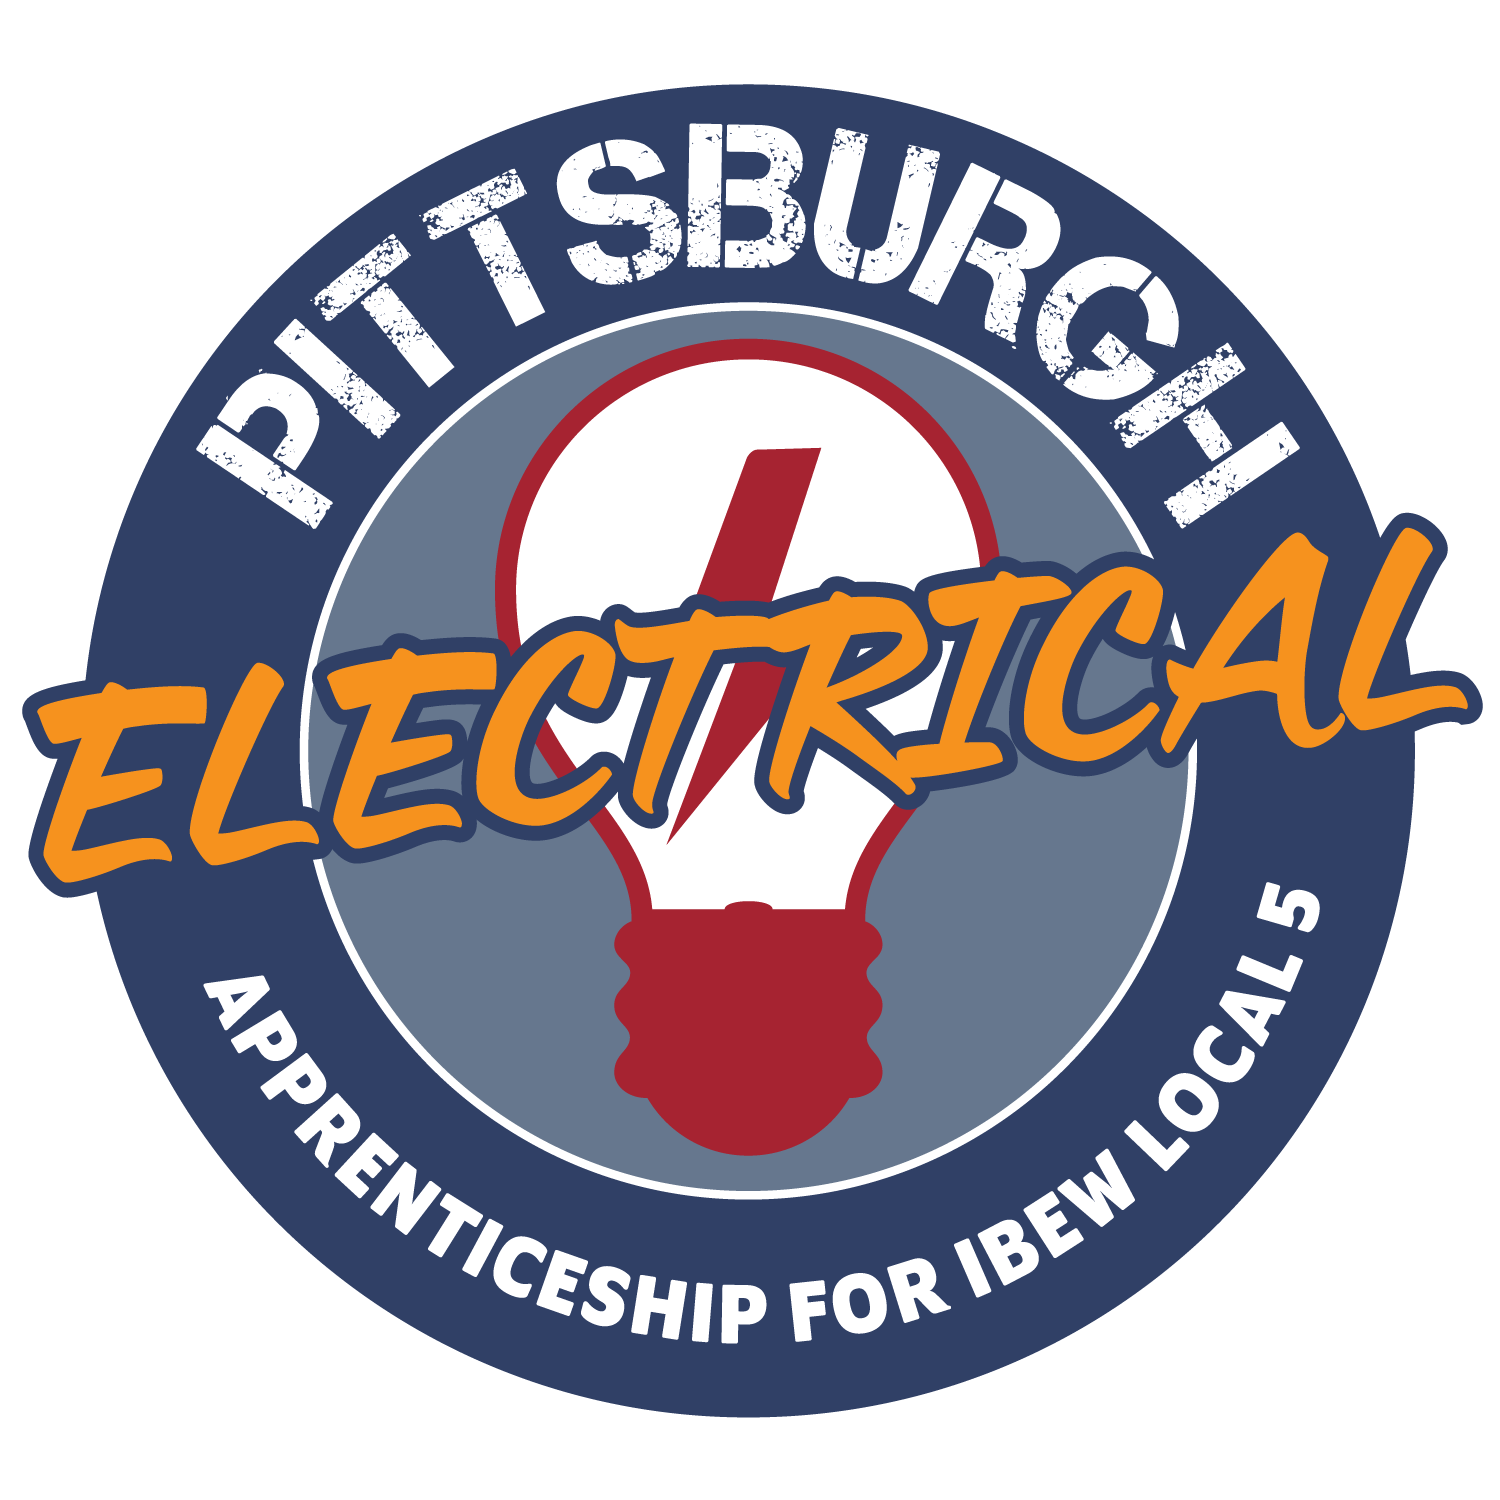 Pittsburgh Electrical JATC